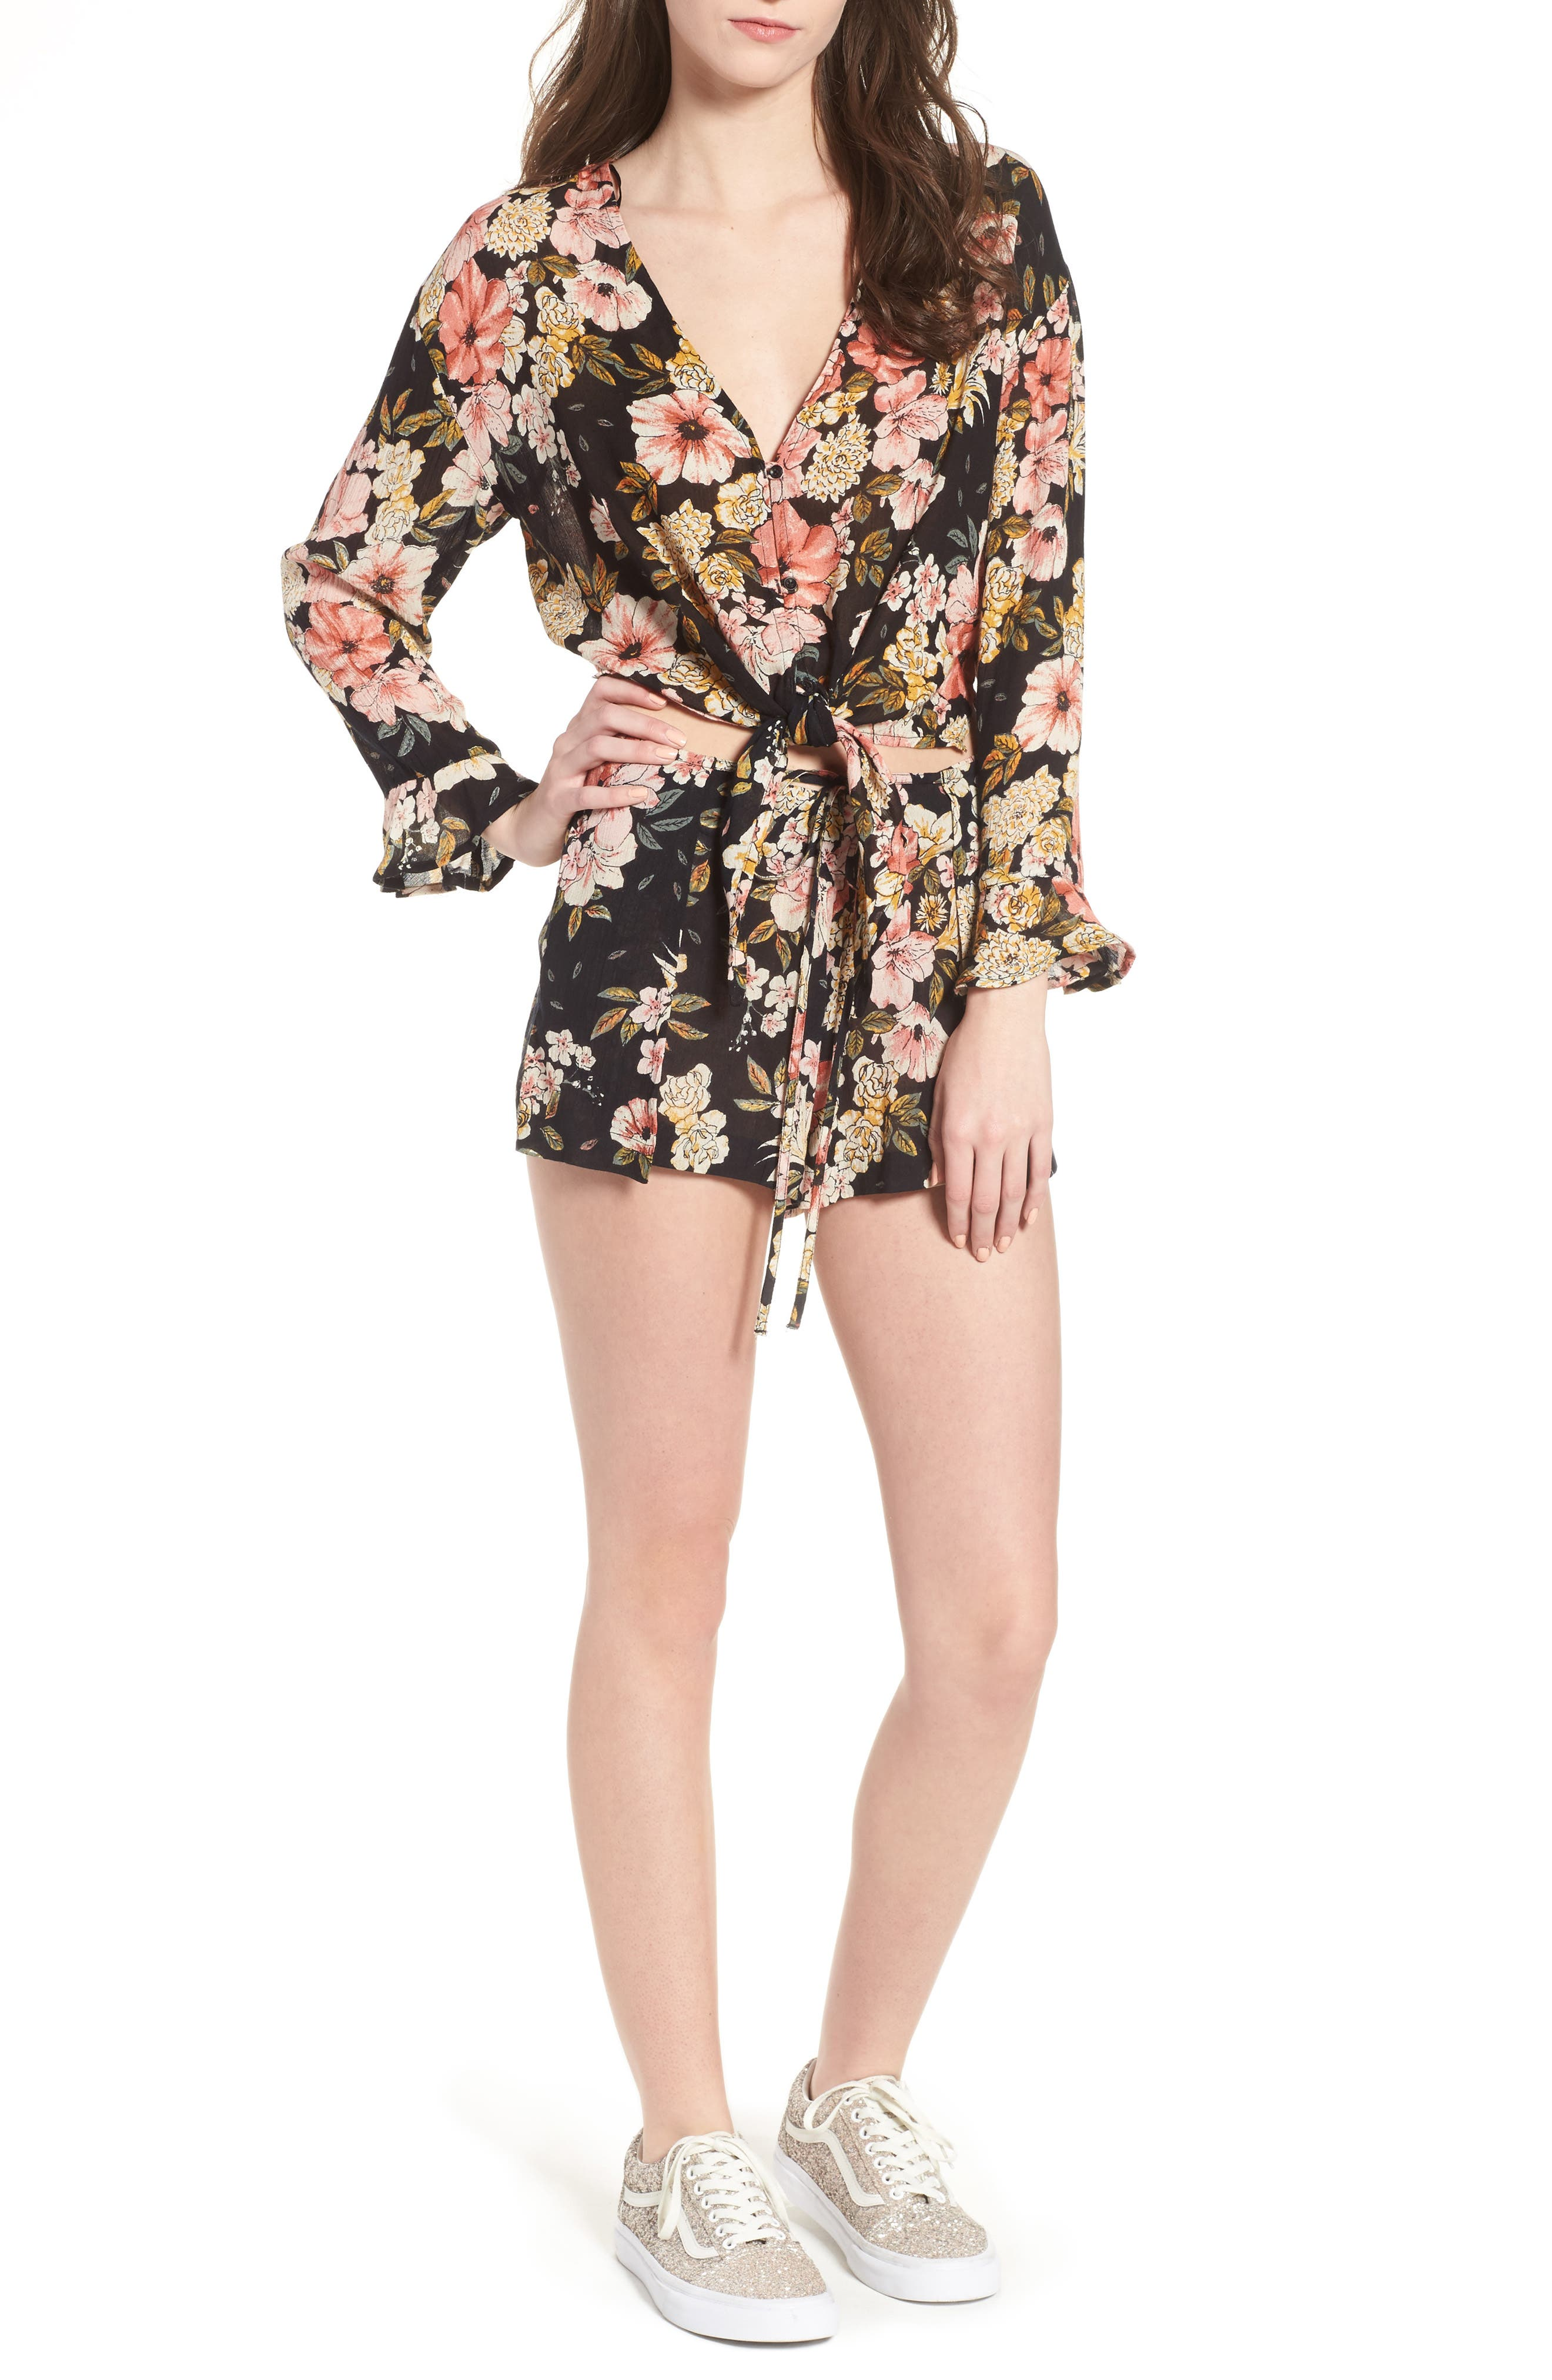 Trippy Day Floral Print Shorts,                         Main,                         color, 001